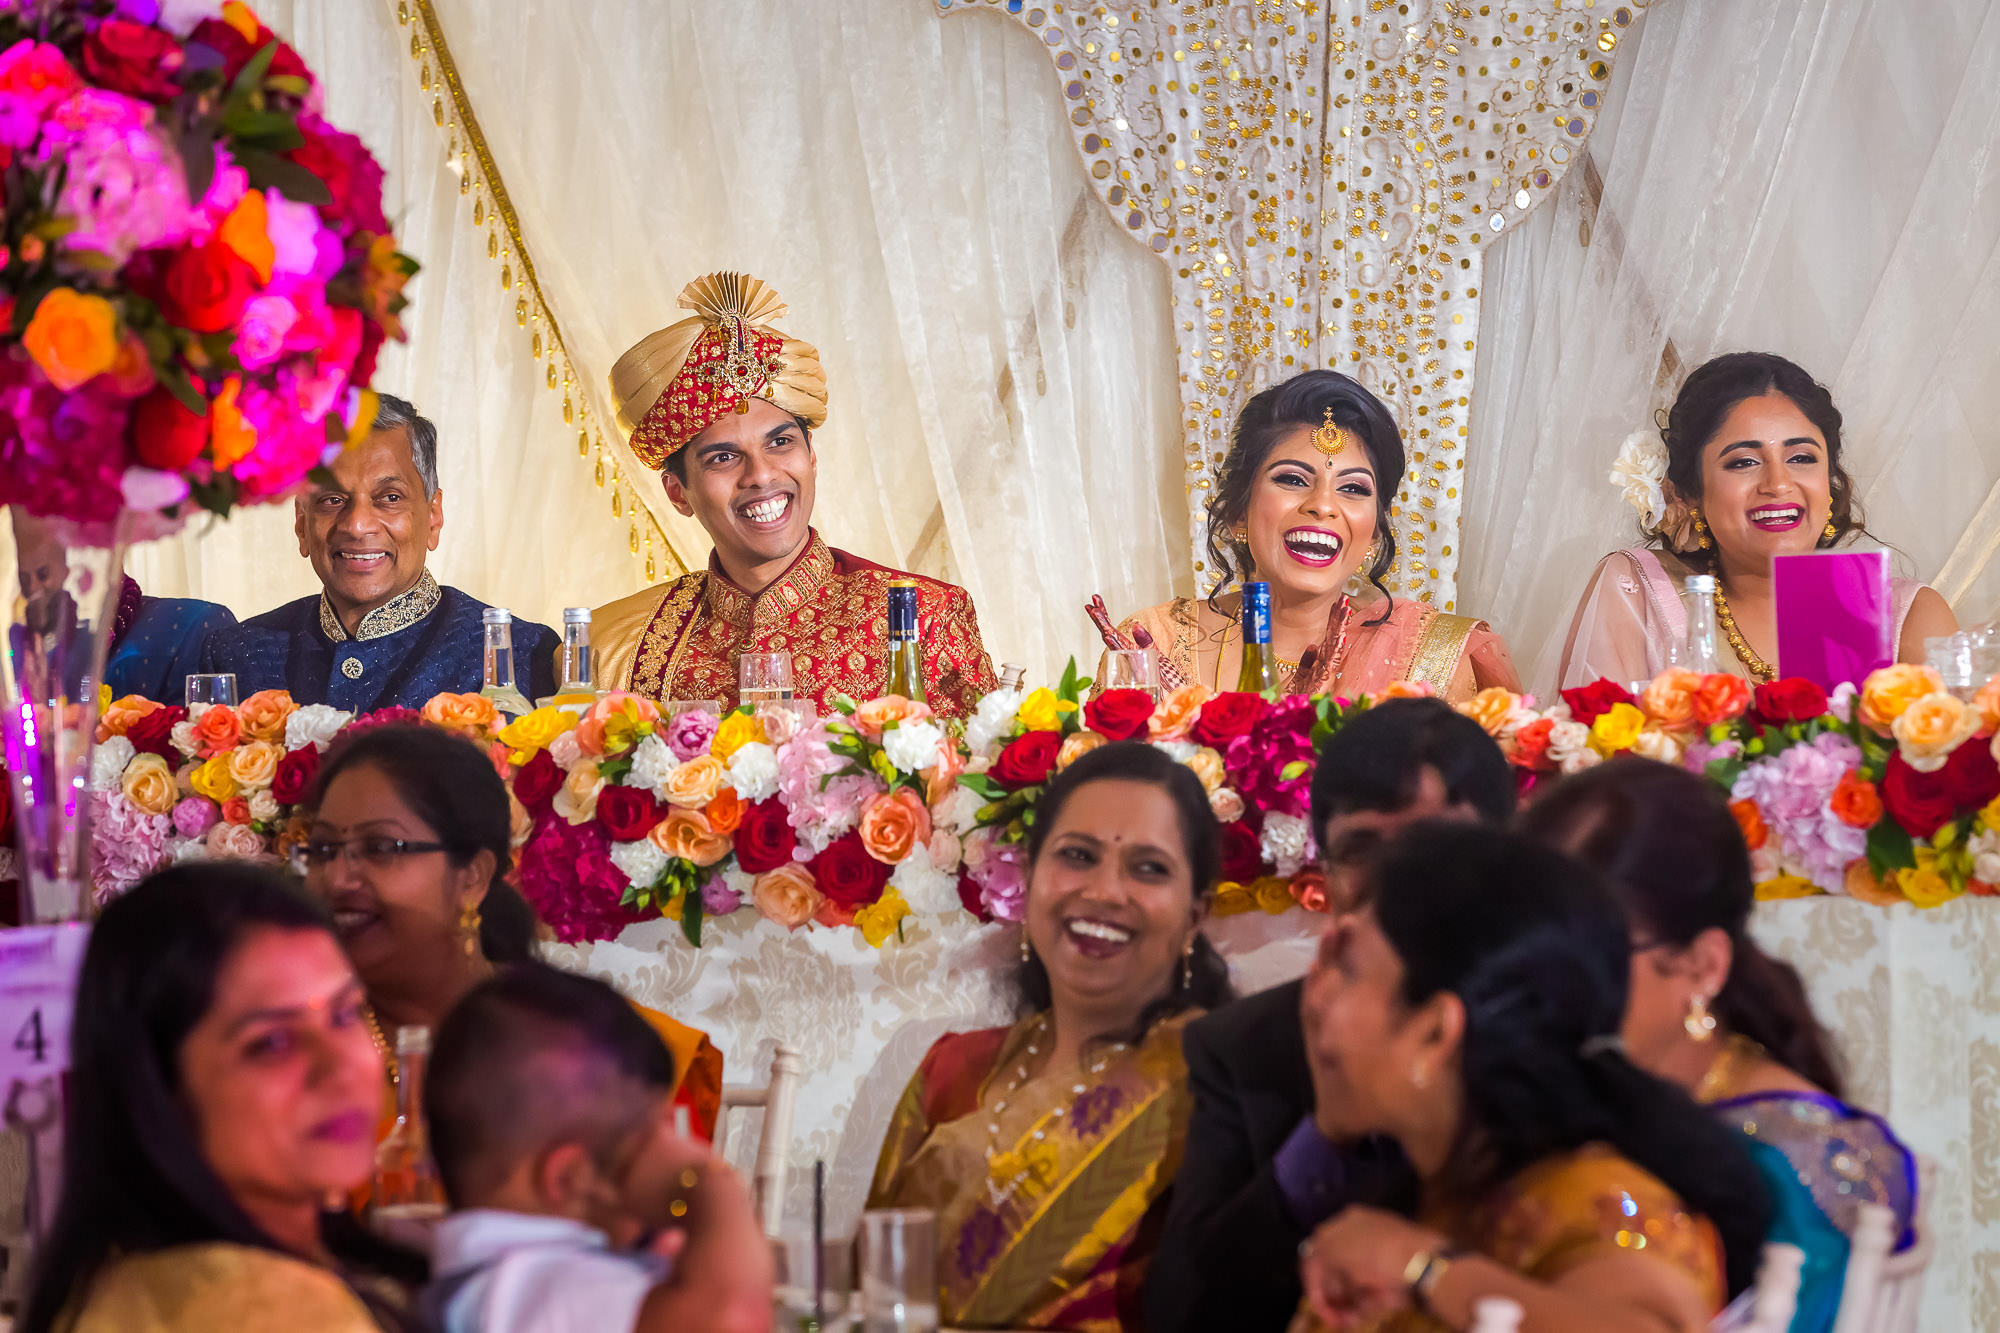 asian-wedding-hindu-tamil-photographer-heythorpe-oxford-0093.jpg